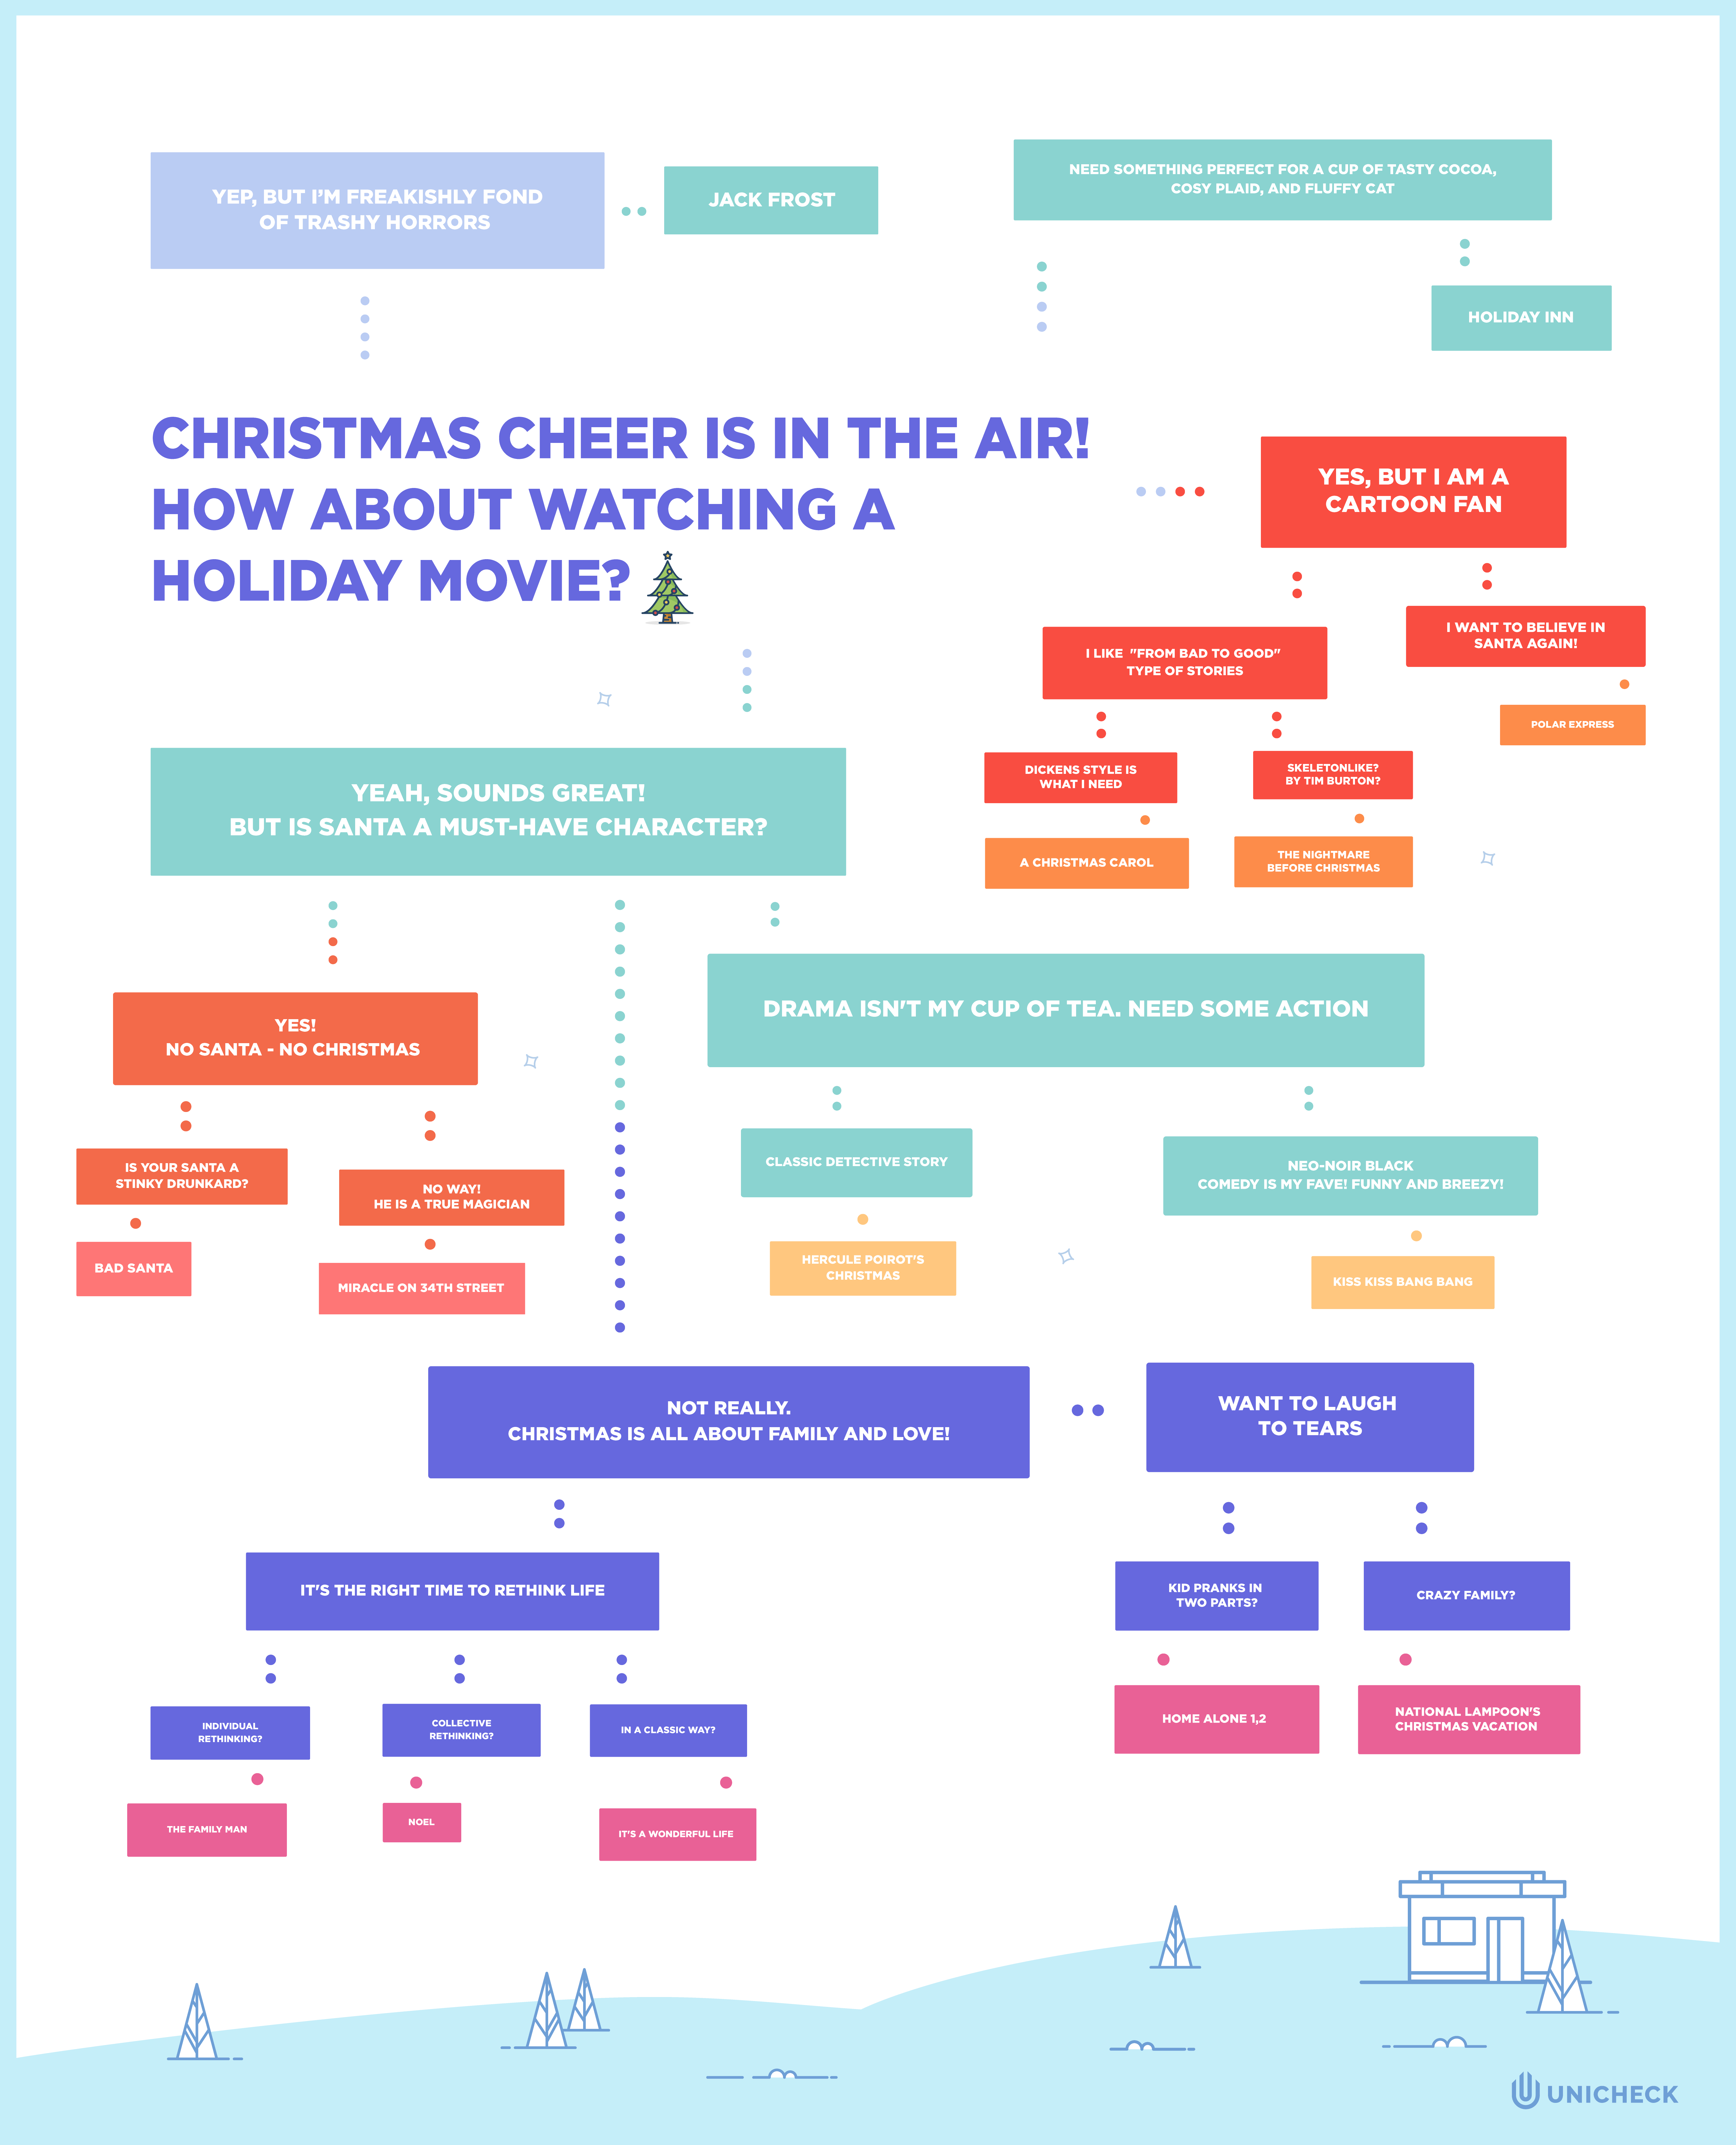 classic xmas movies by Unicheck